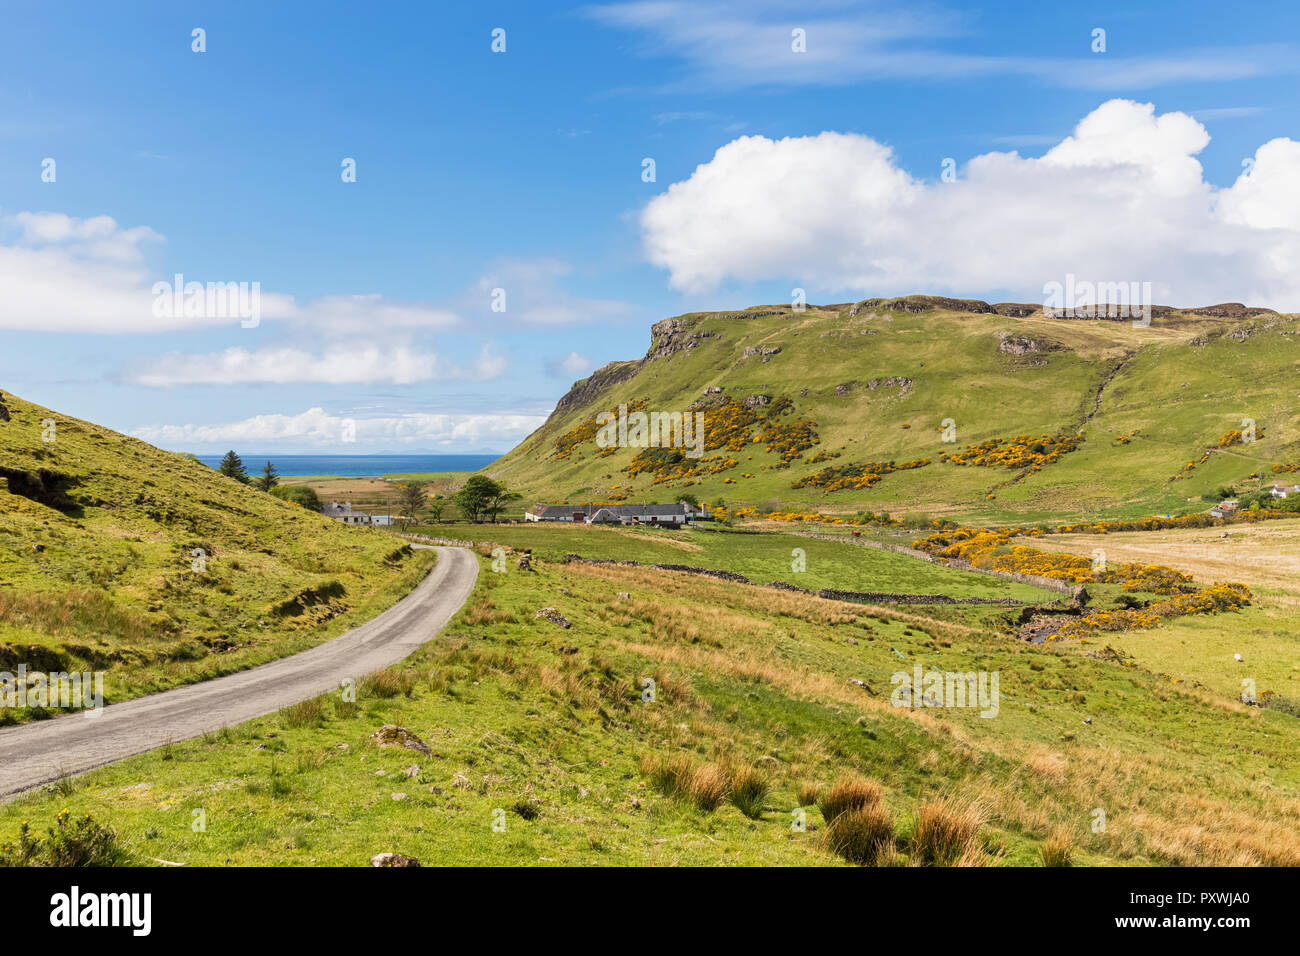 UK, Scotland, Inner Hebrides, Isle of Skye, road to Talisker Bay - Stock Image